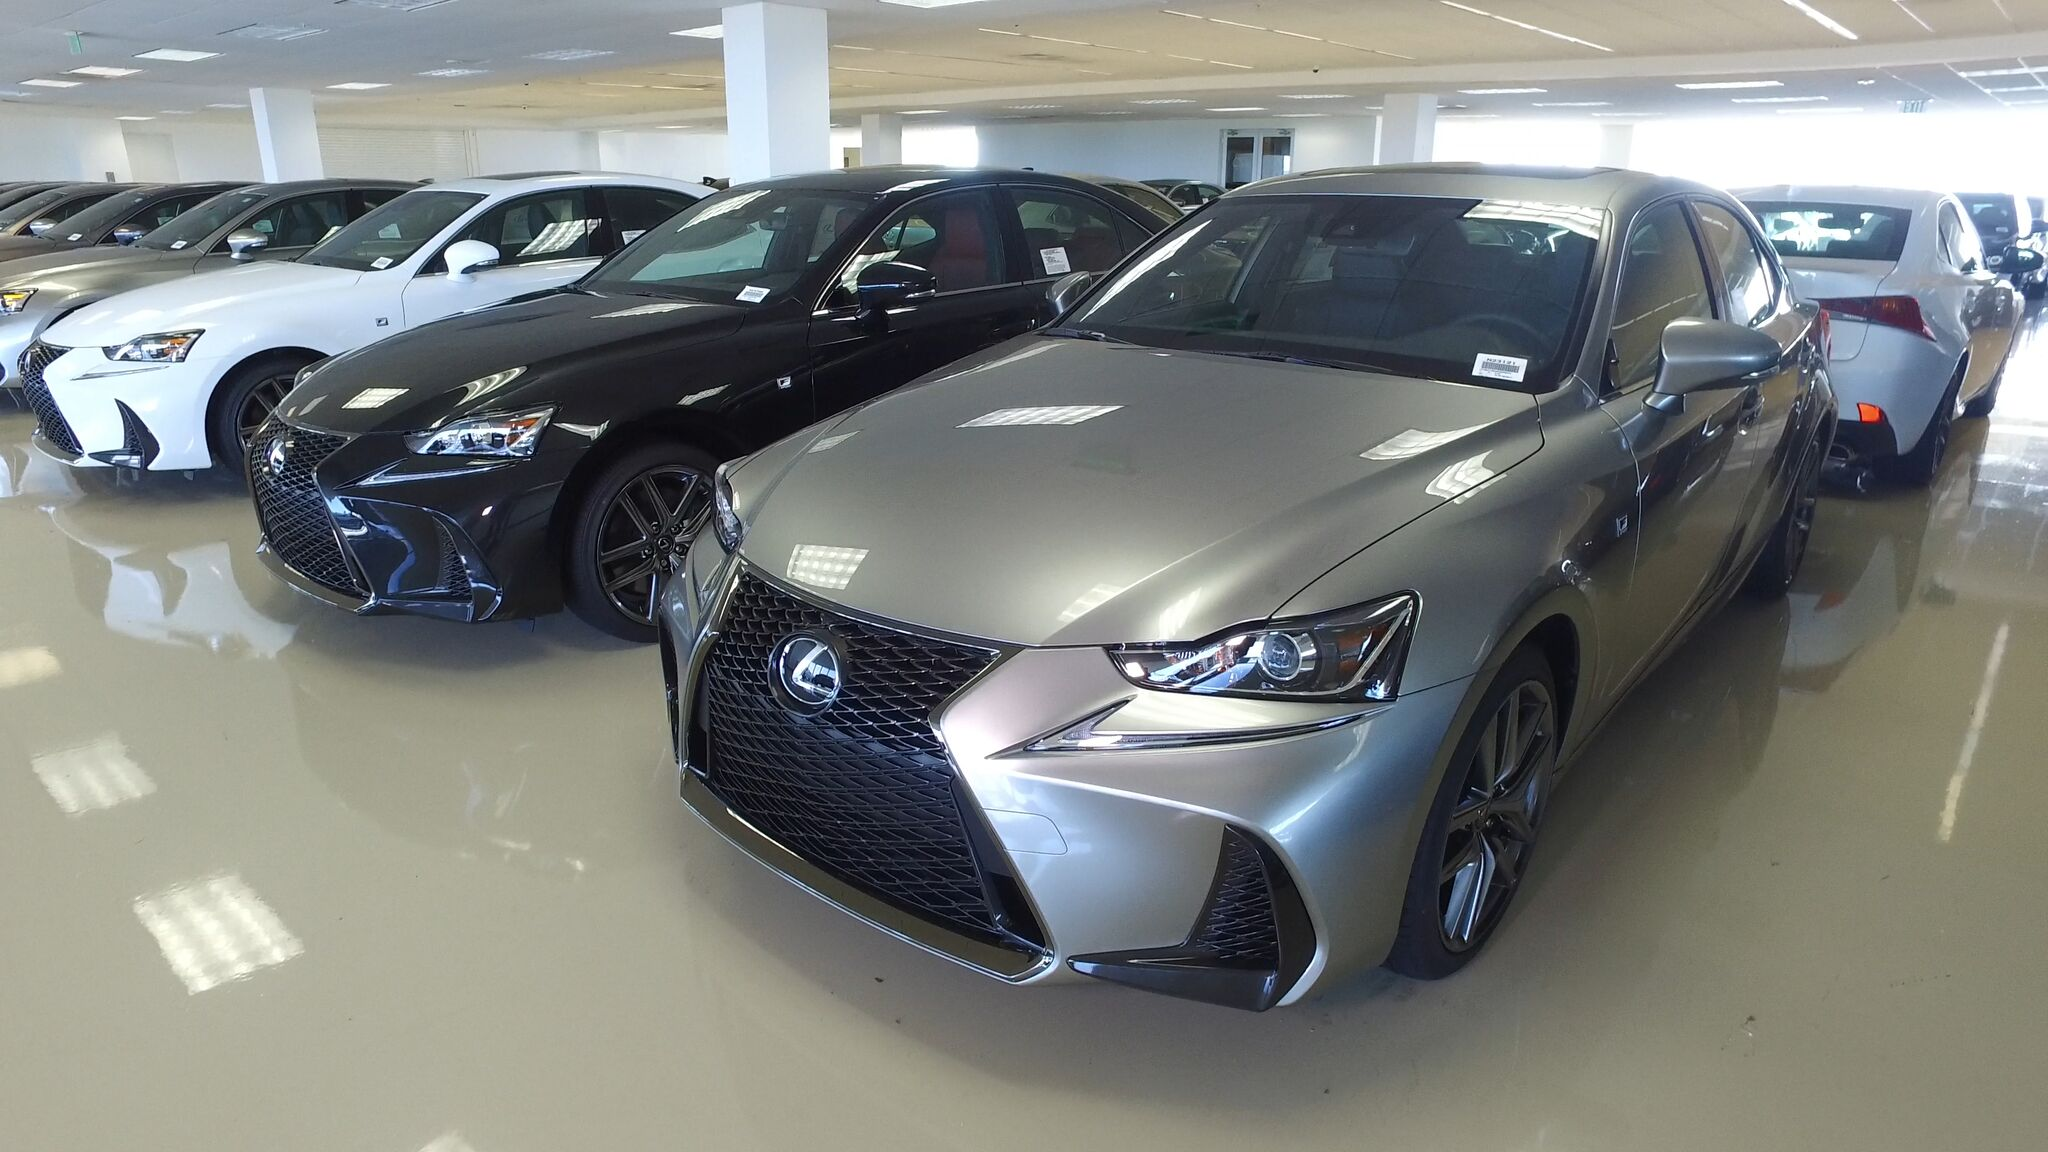 luxury lease deals lexus special most img has assalamualaikum freebies synonymous market kabyr in brand been leasing affordable offers today and the with cute